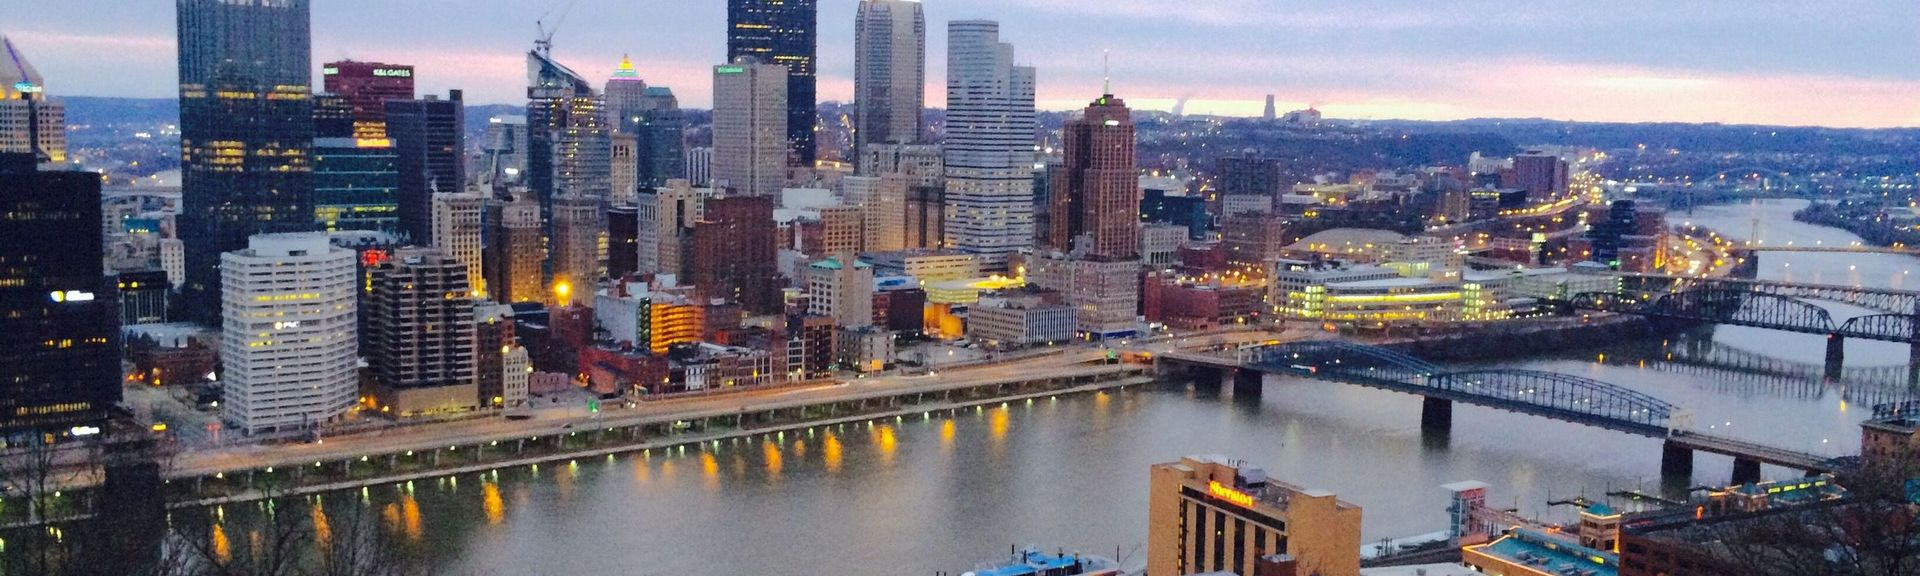 Downtown Pittsburgh, Pittsburgh, Pennsylvania, USA